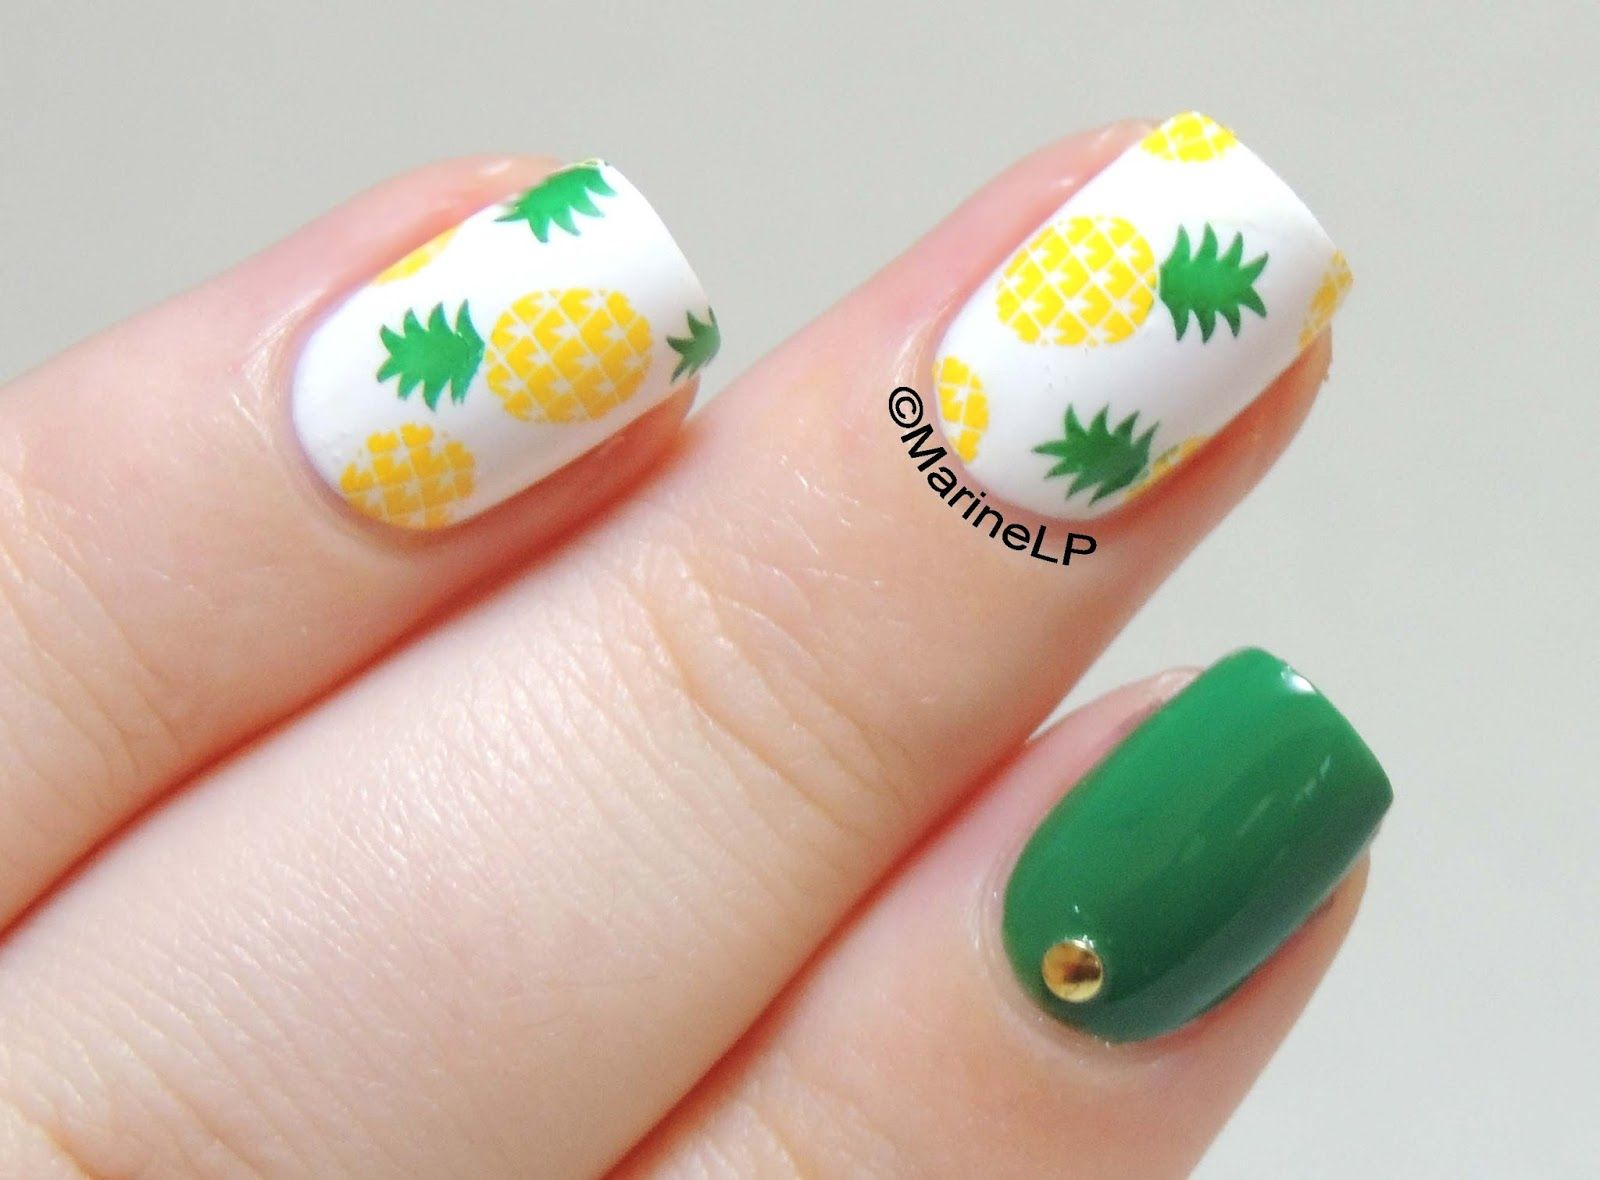 Pineapple nails pineapple nails stud nails and teas pineapple nails models own green tea stamping pueen 06 studs nails prinsesfo Image collections